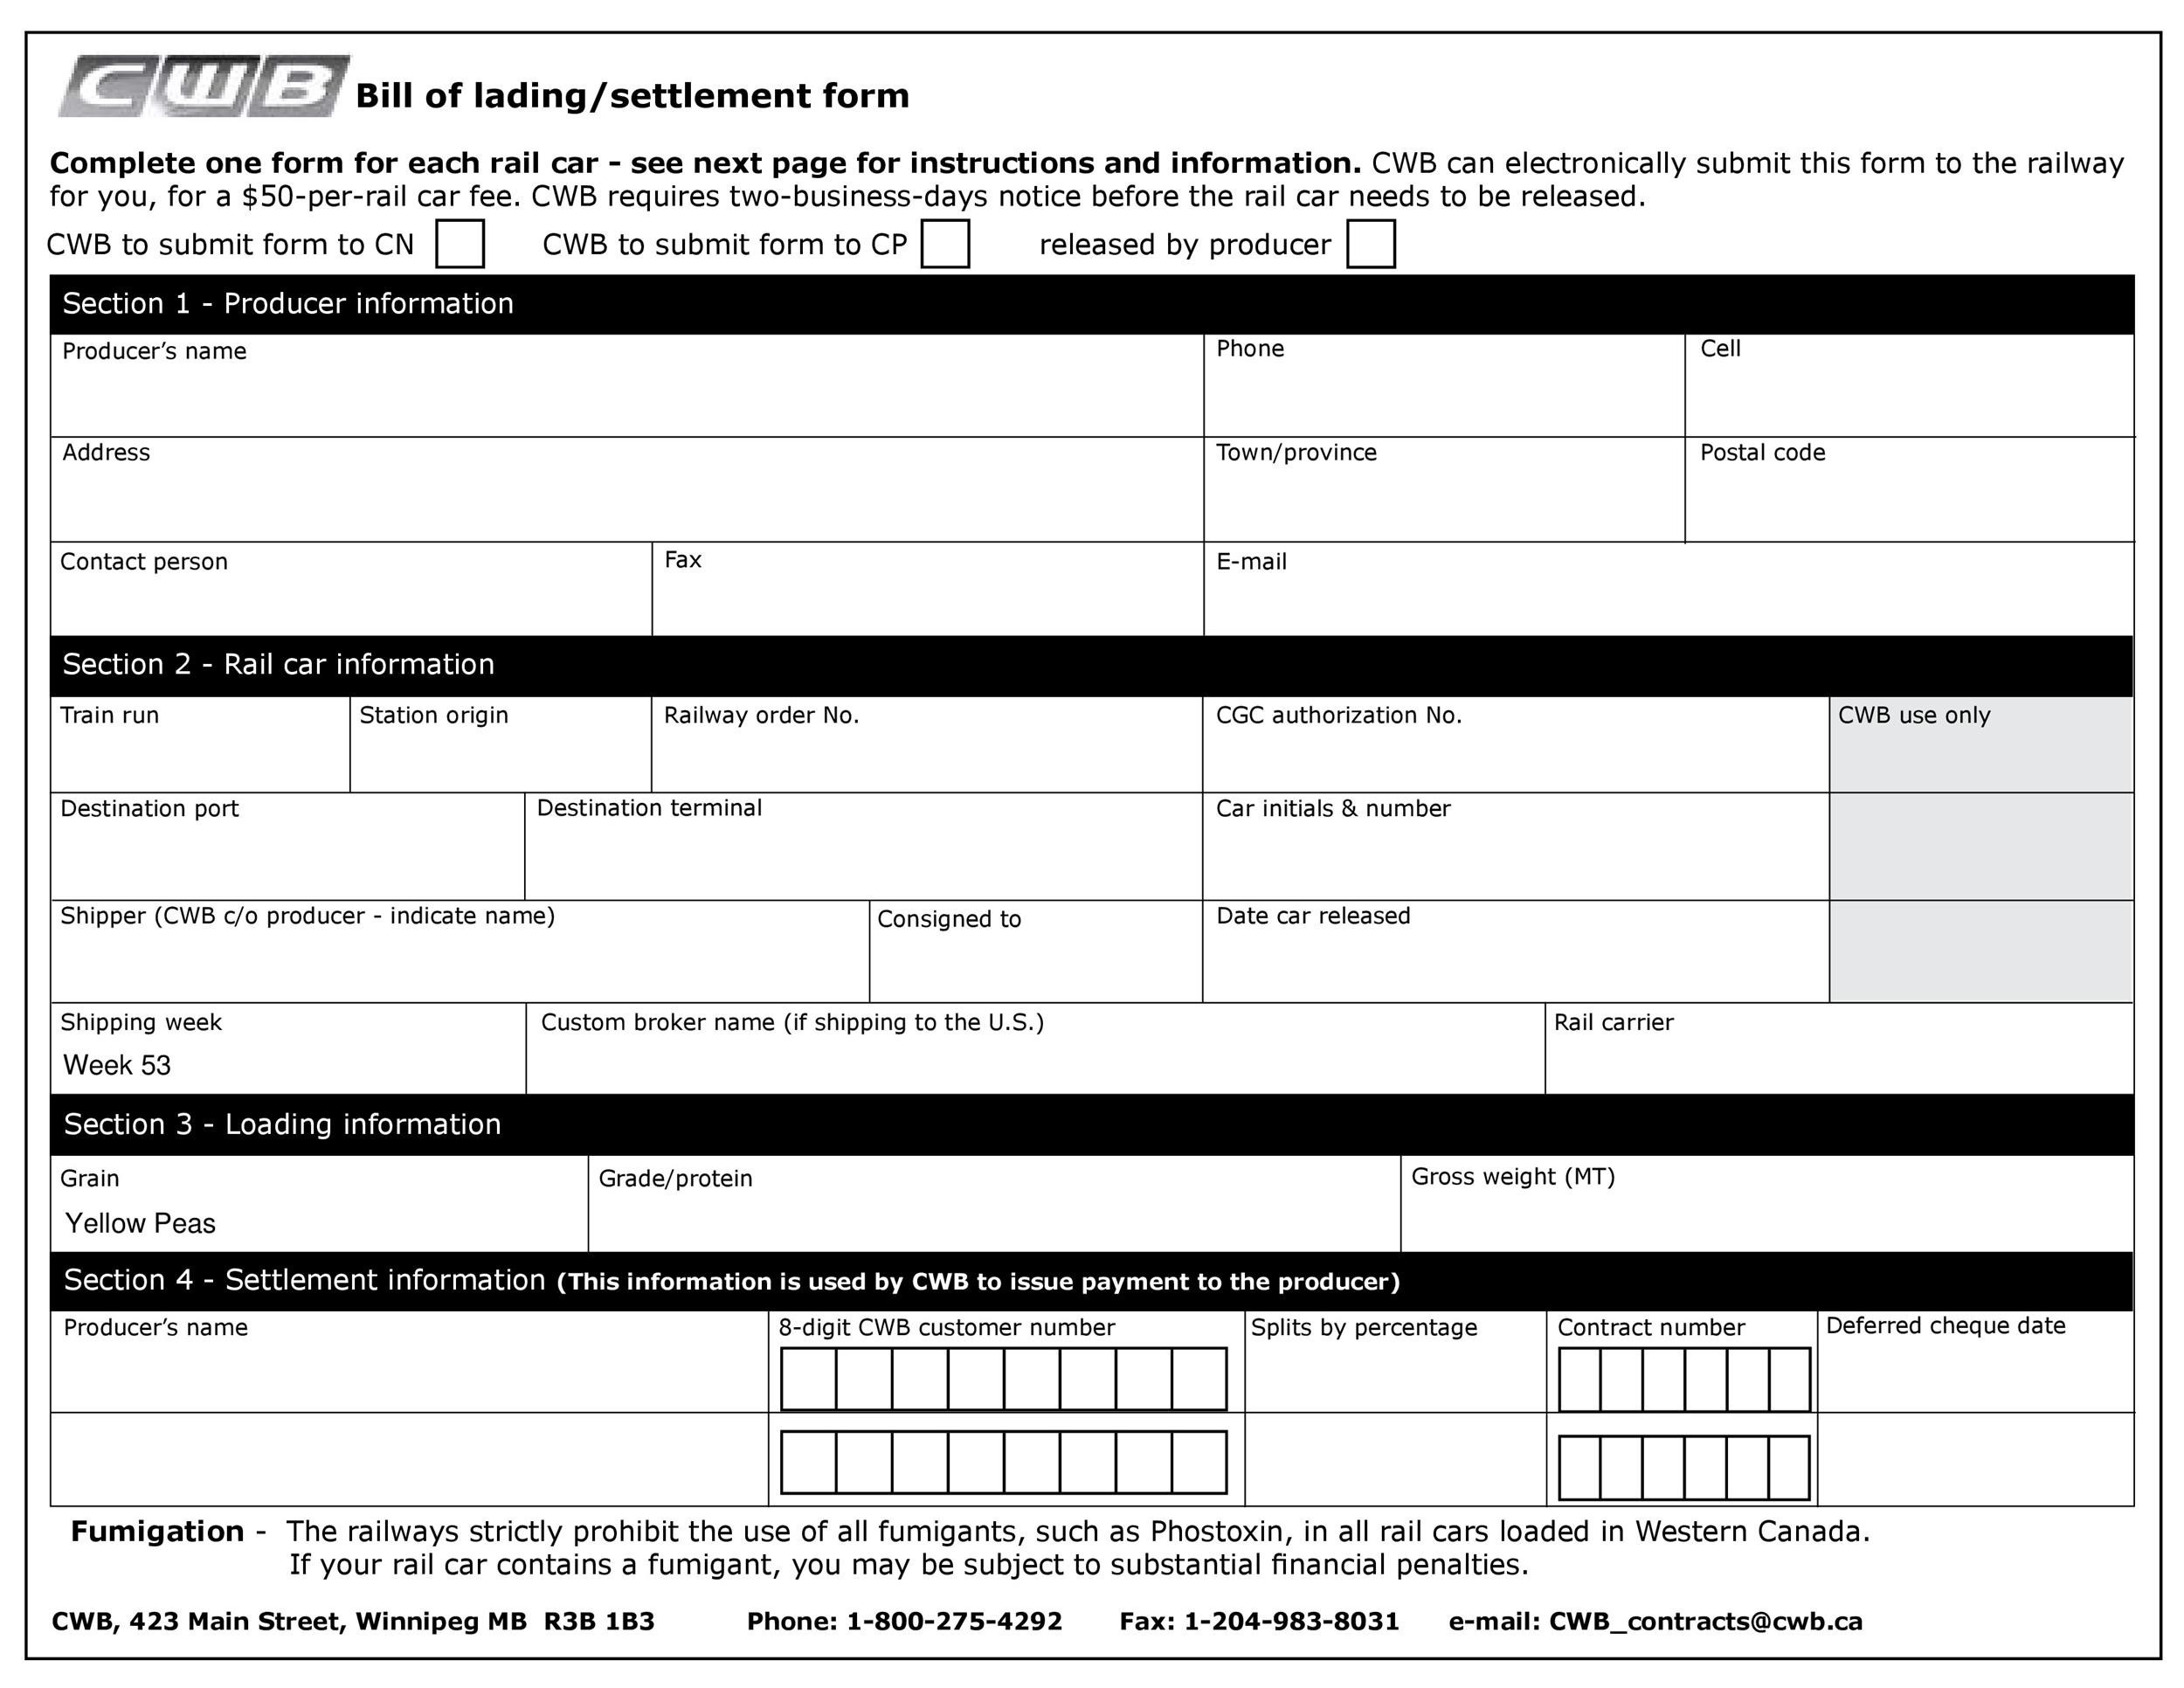 40 Free Bill of Lading Forms  Templates - Template Lab